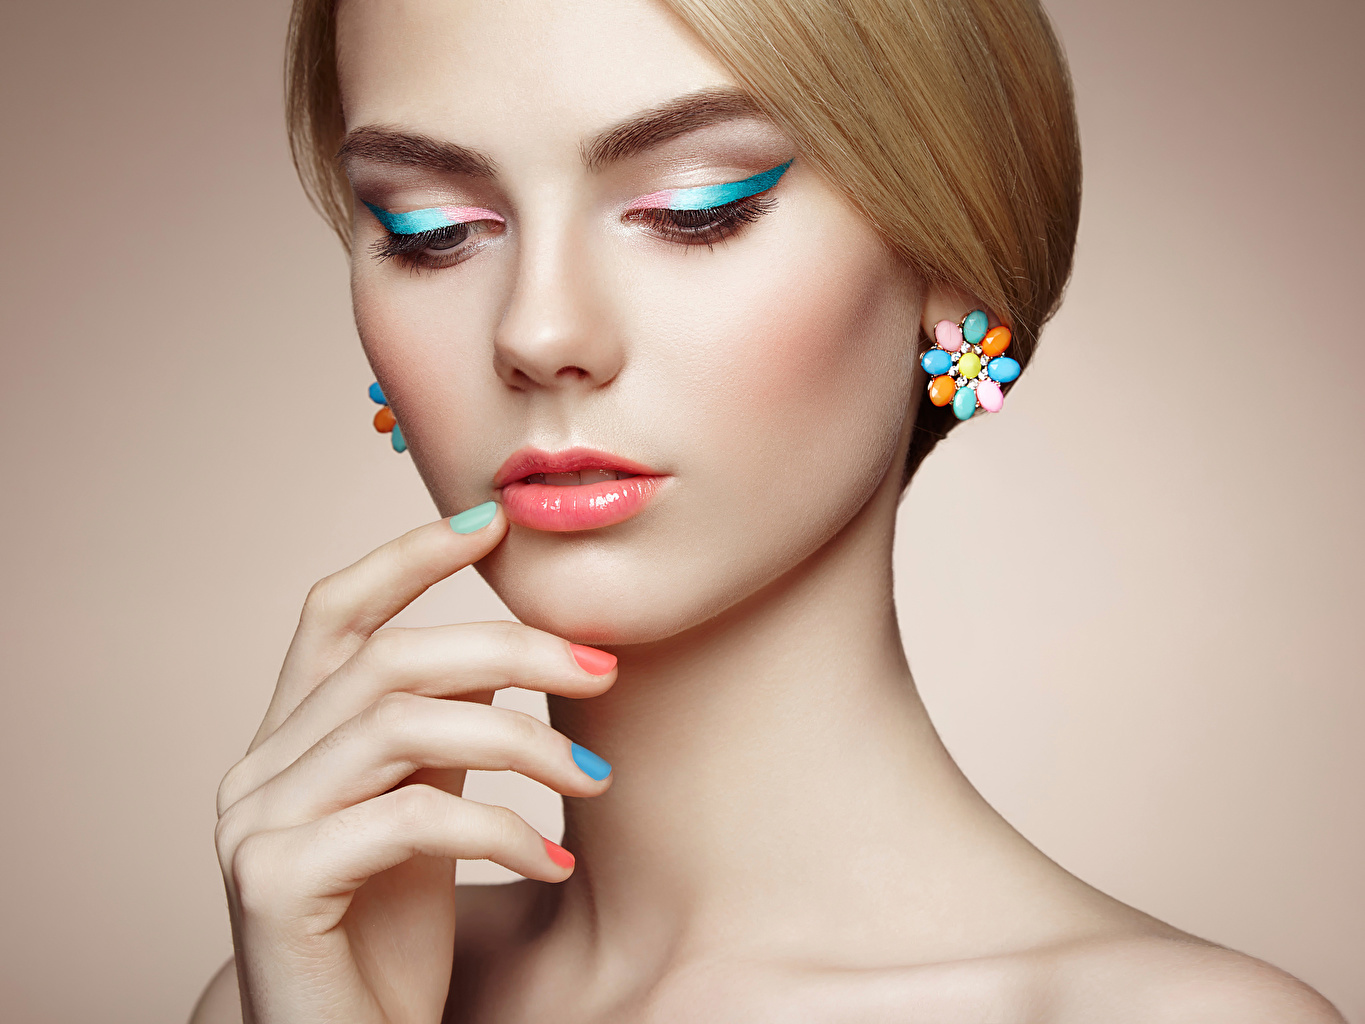 Pictures Manicure Oleg Gekman Face Girls Hands Jewelry female young woman